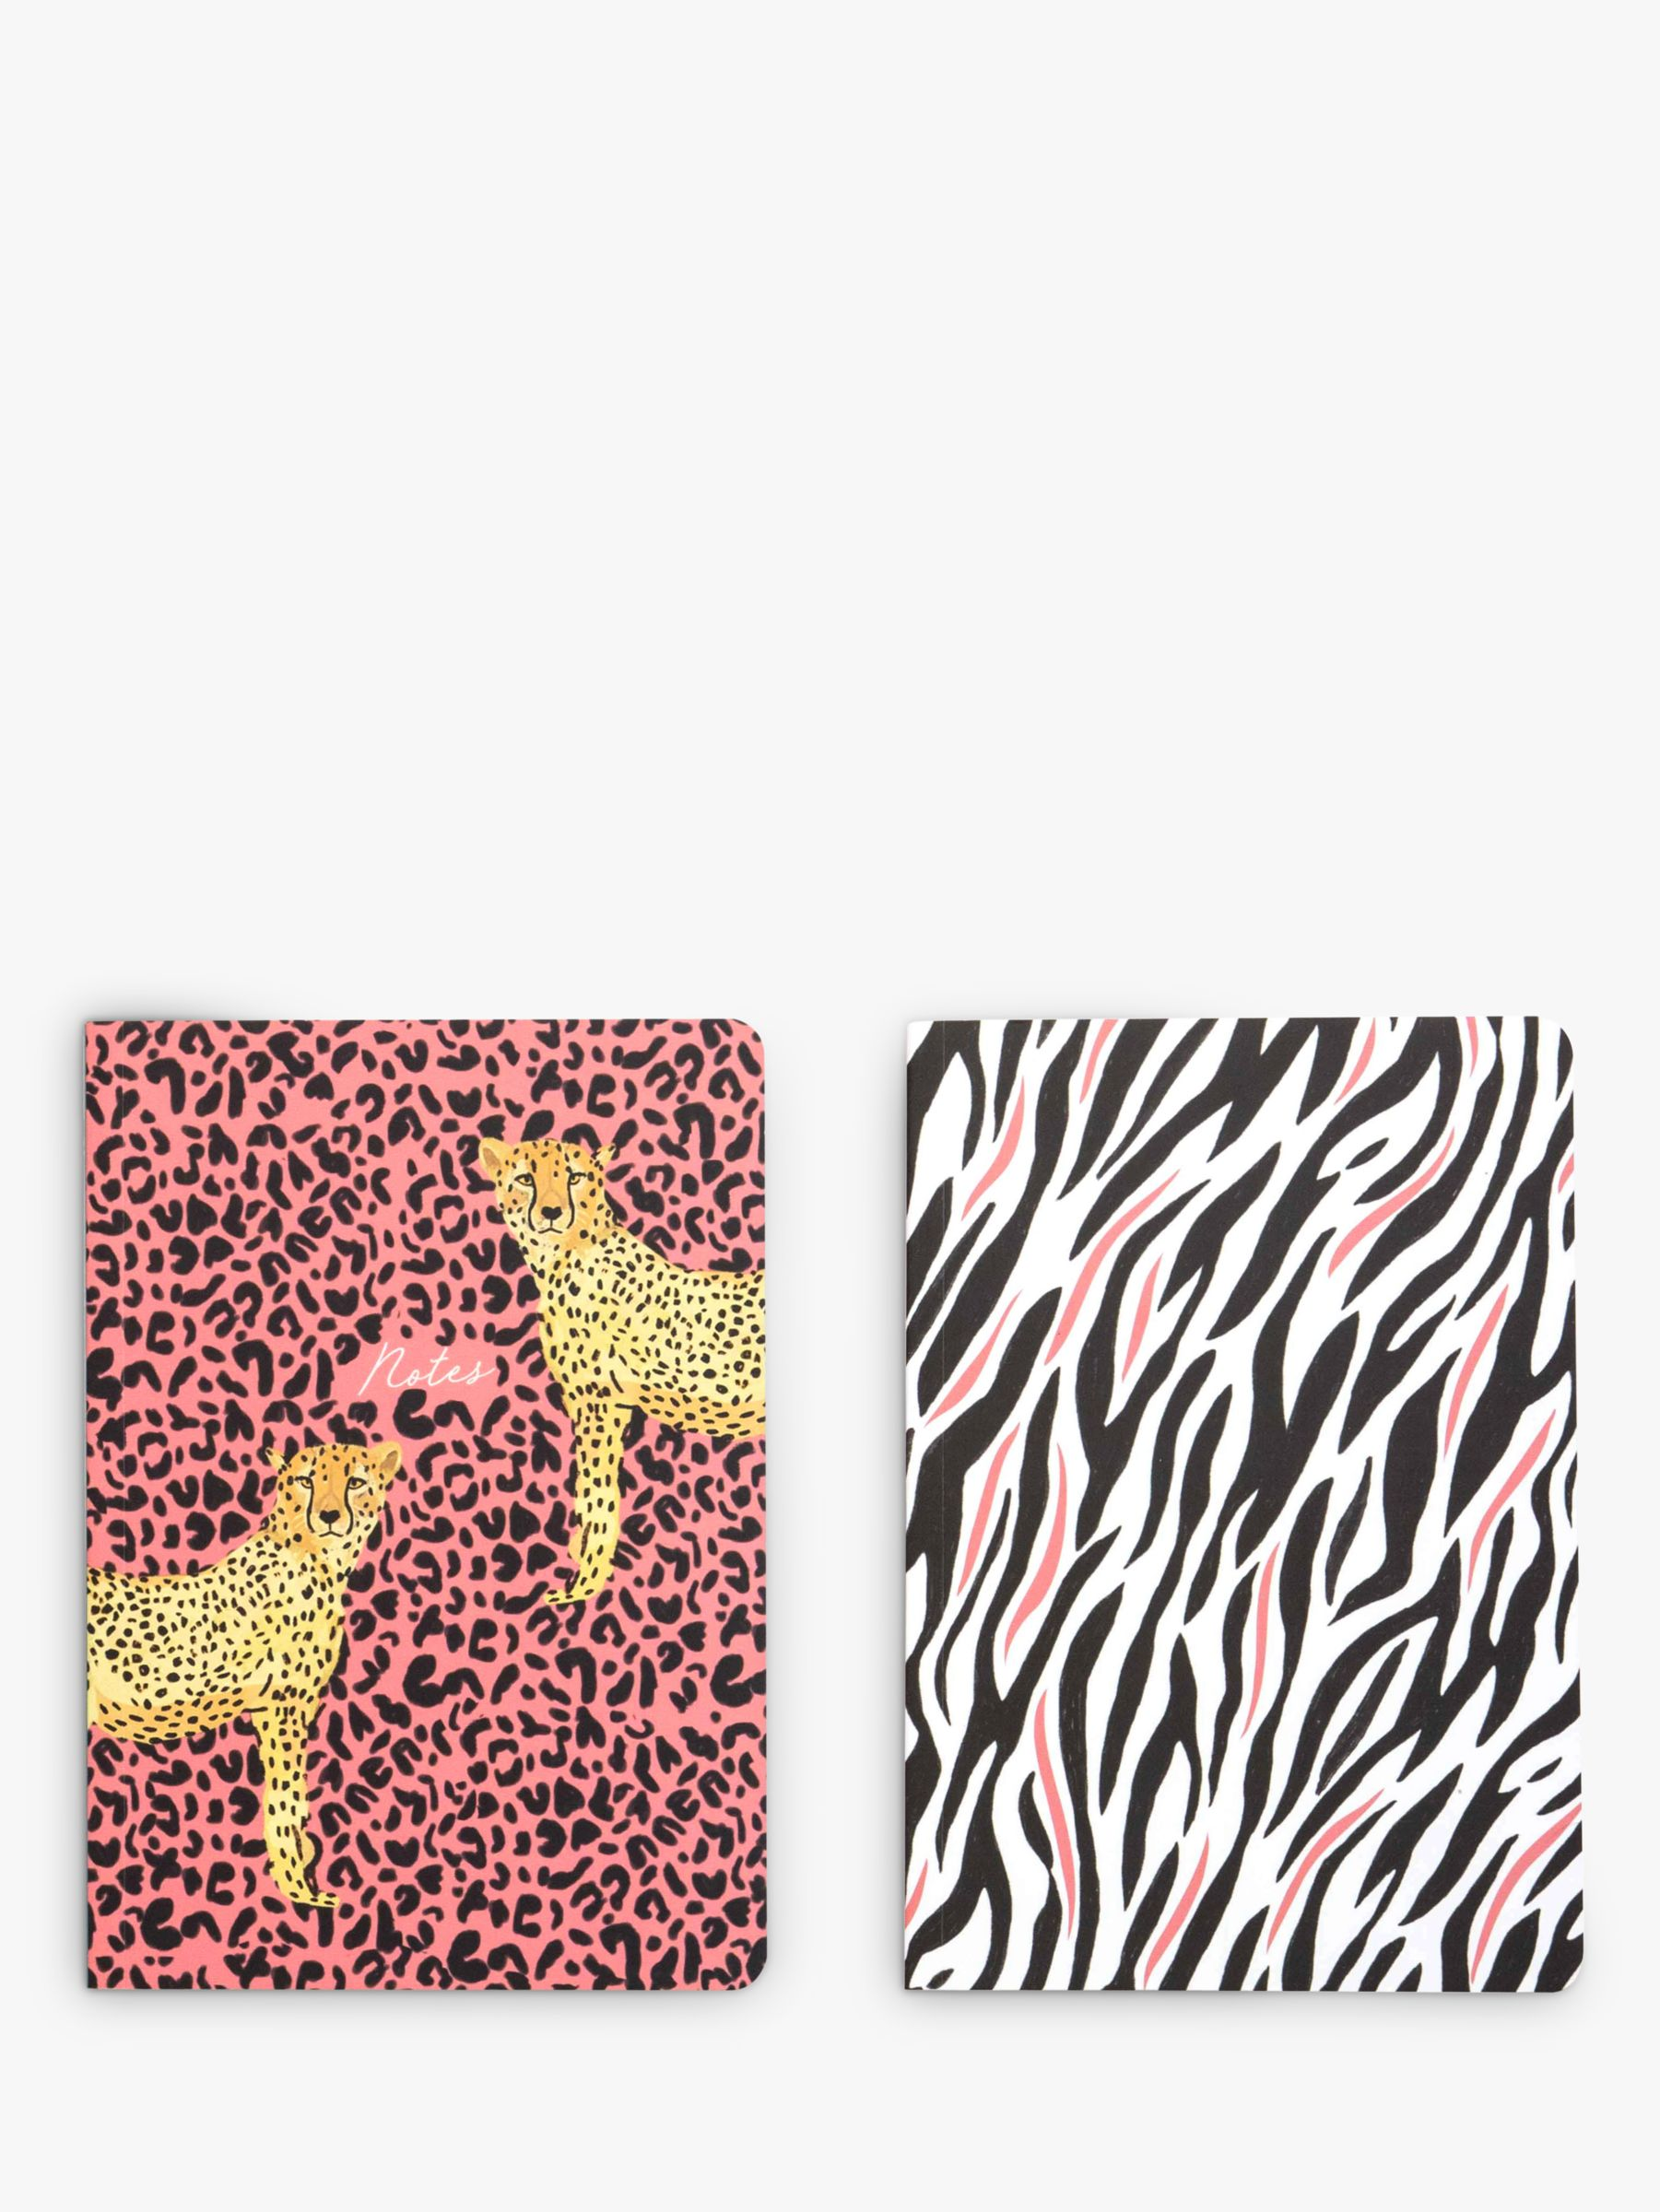 Portico Portico A5 Animal Print Notebooks, Pack of 2